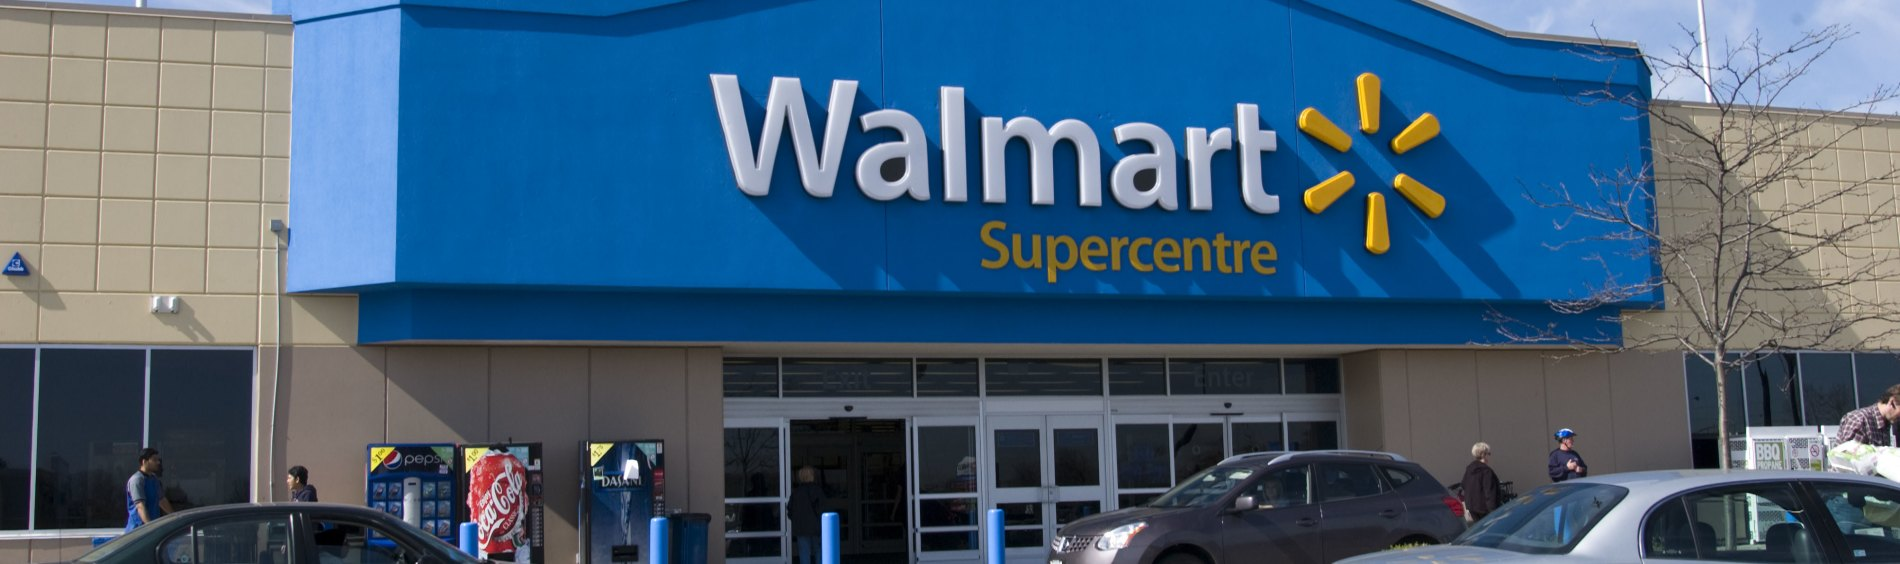 A Walmart Supercentre exterior view with cars from the parking lot